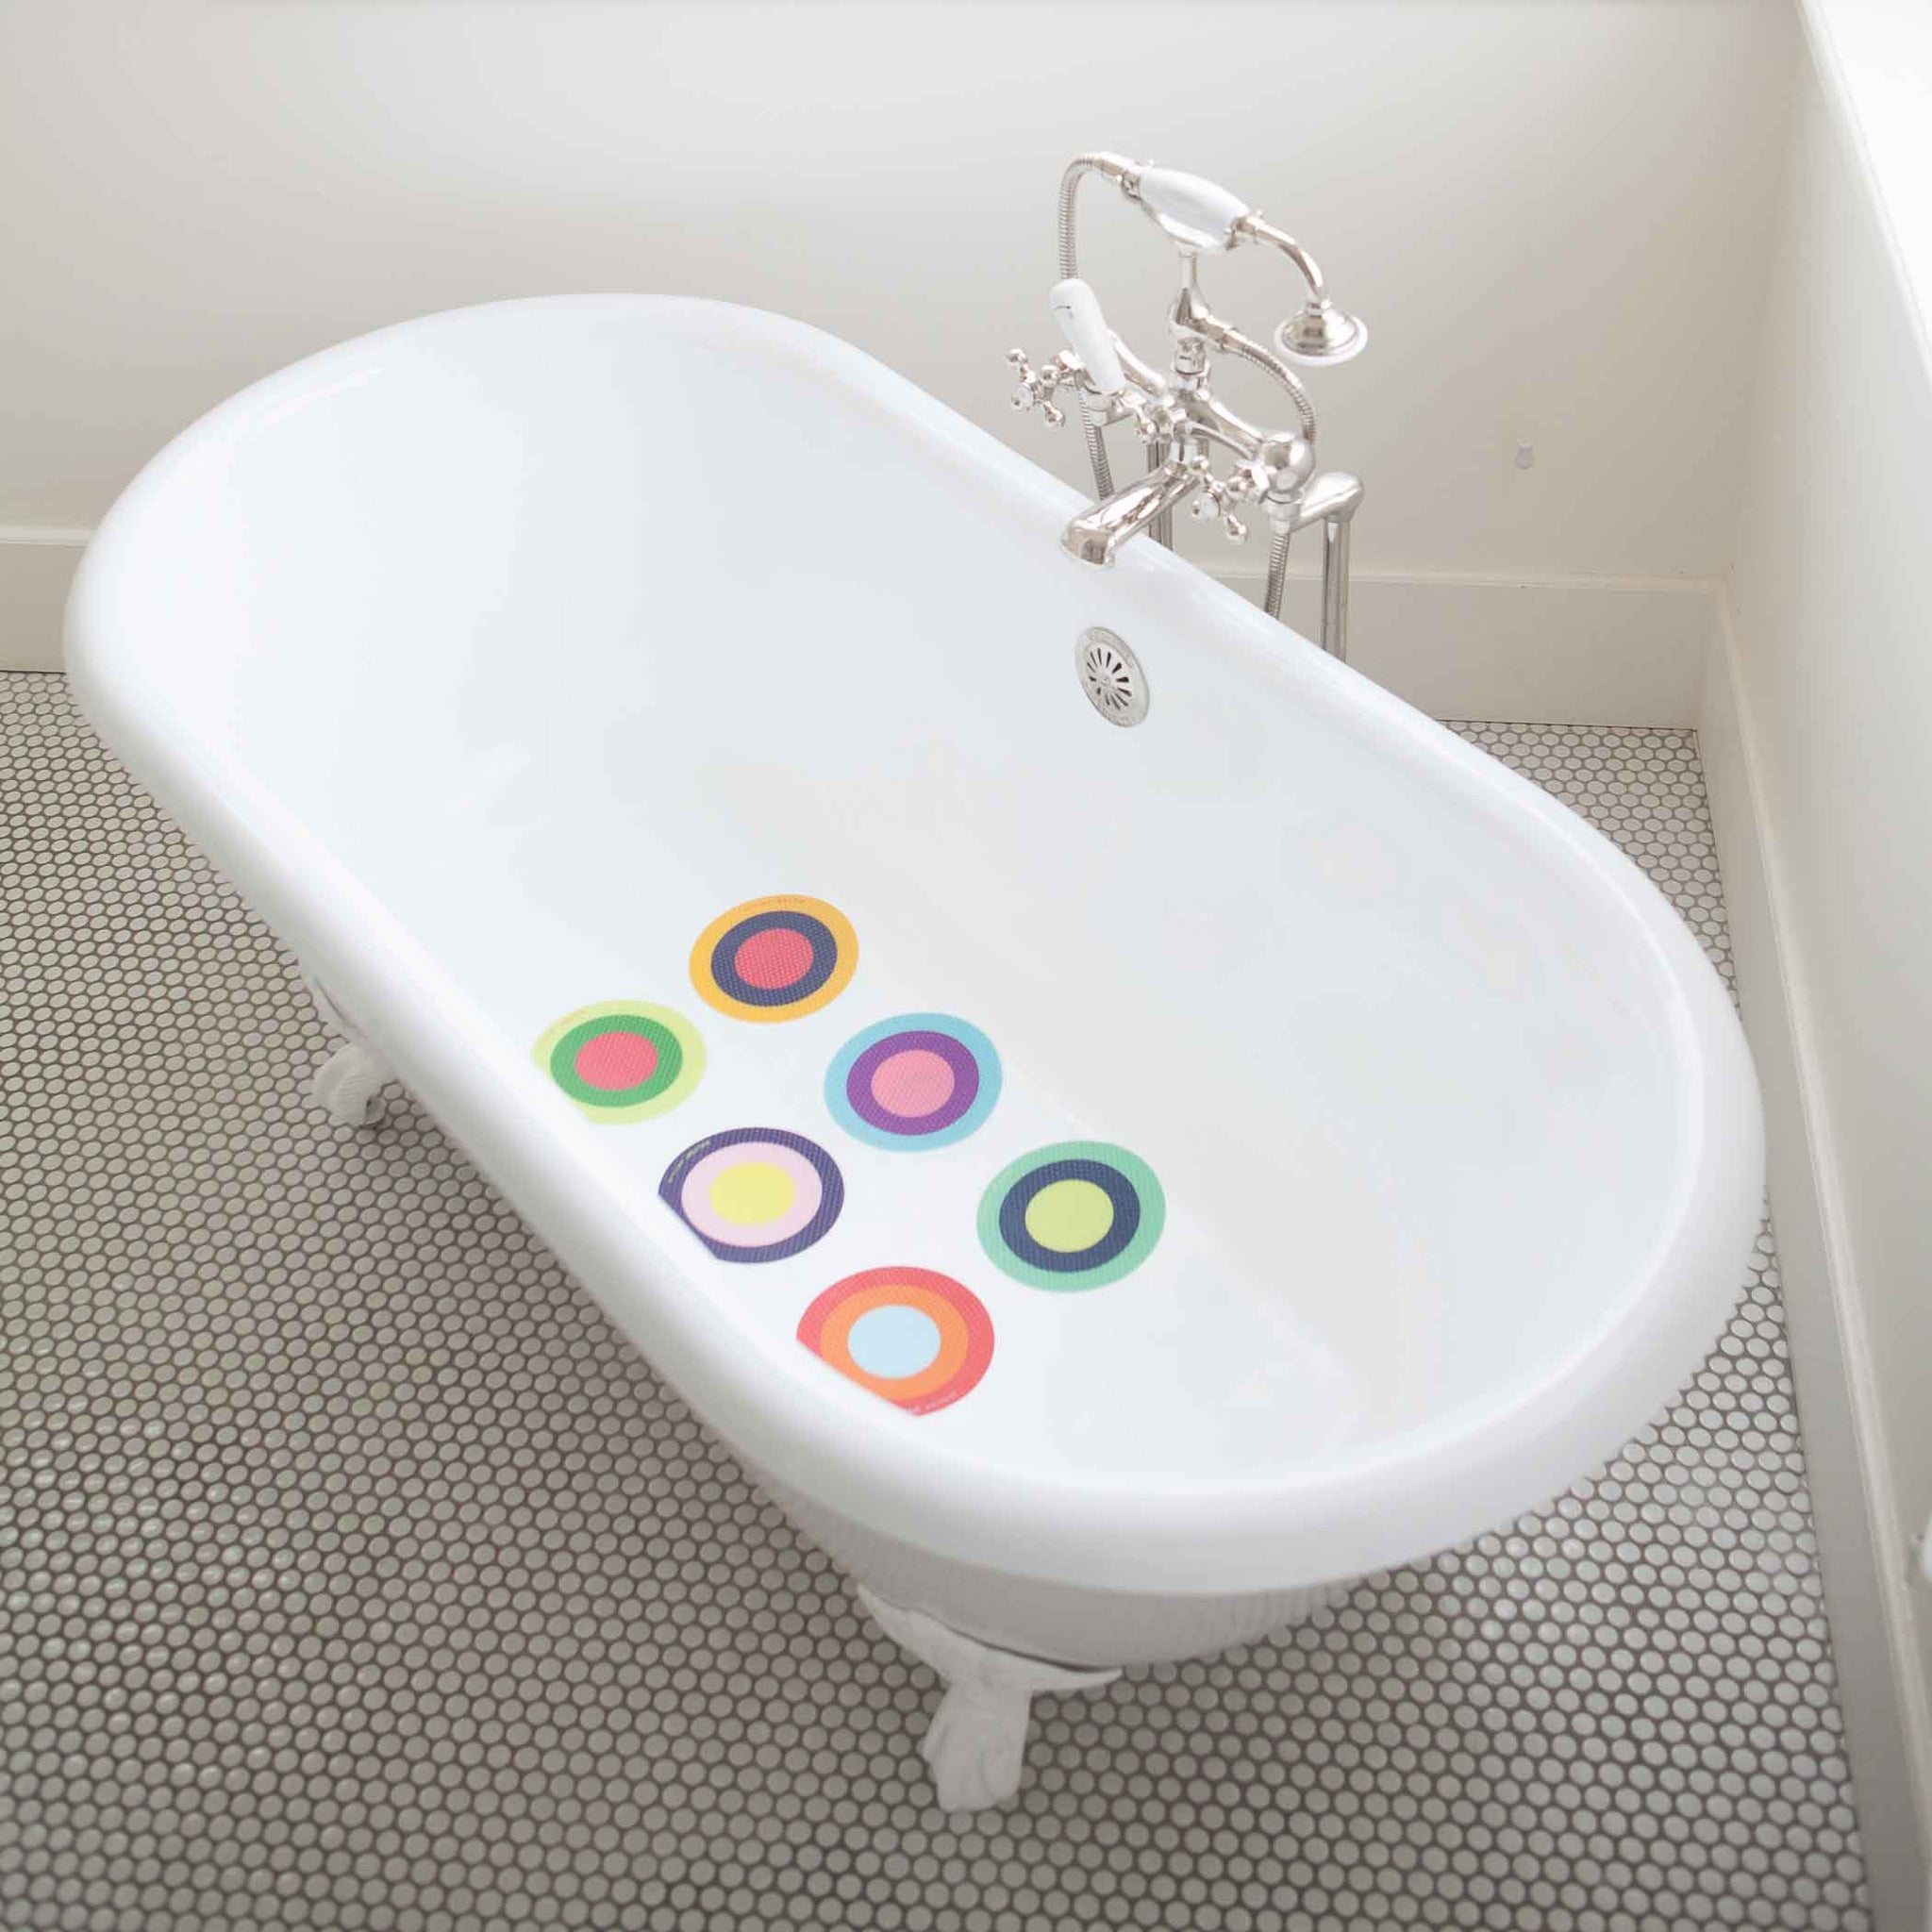 Treads - 6 Pieces Super grippy bath treads - Puj